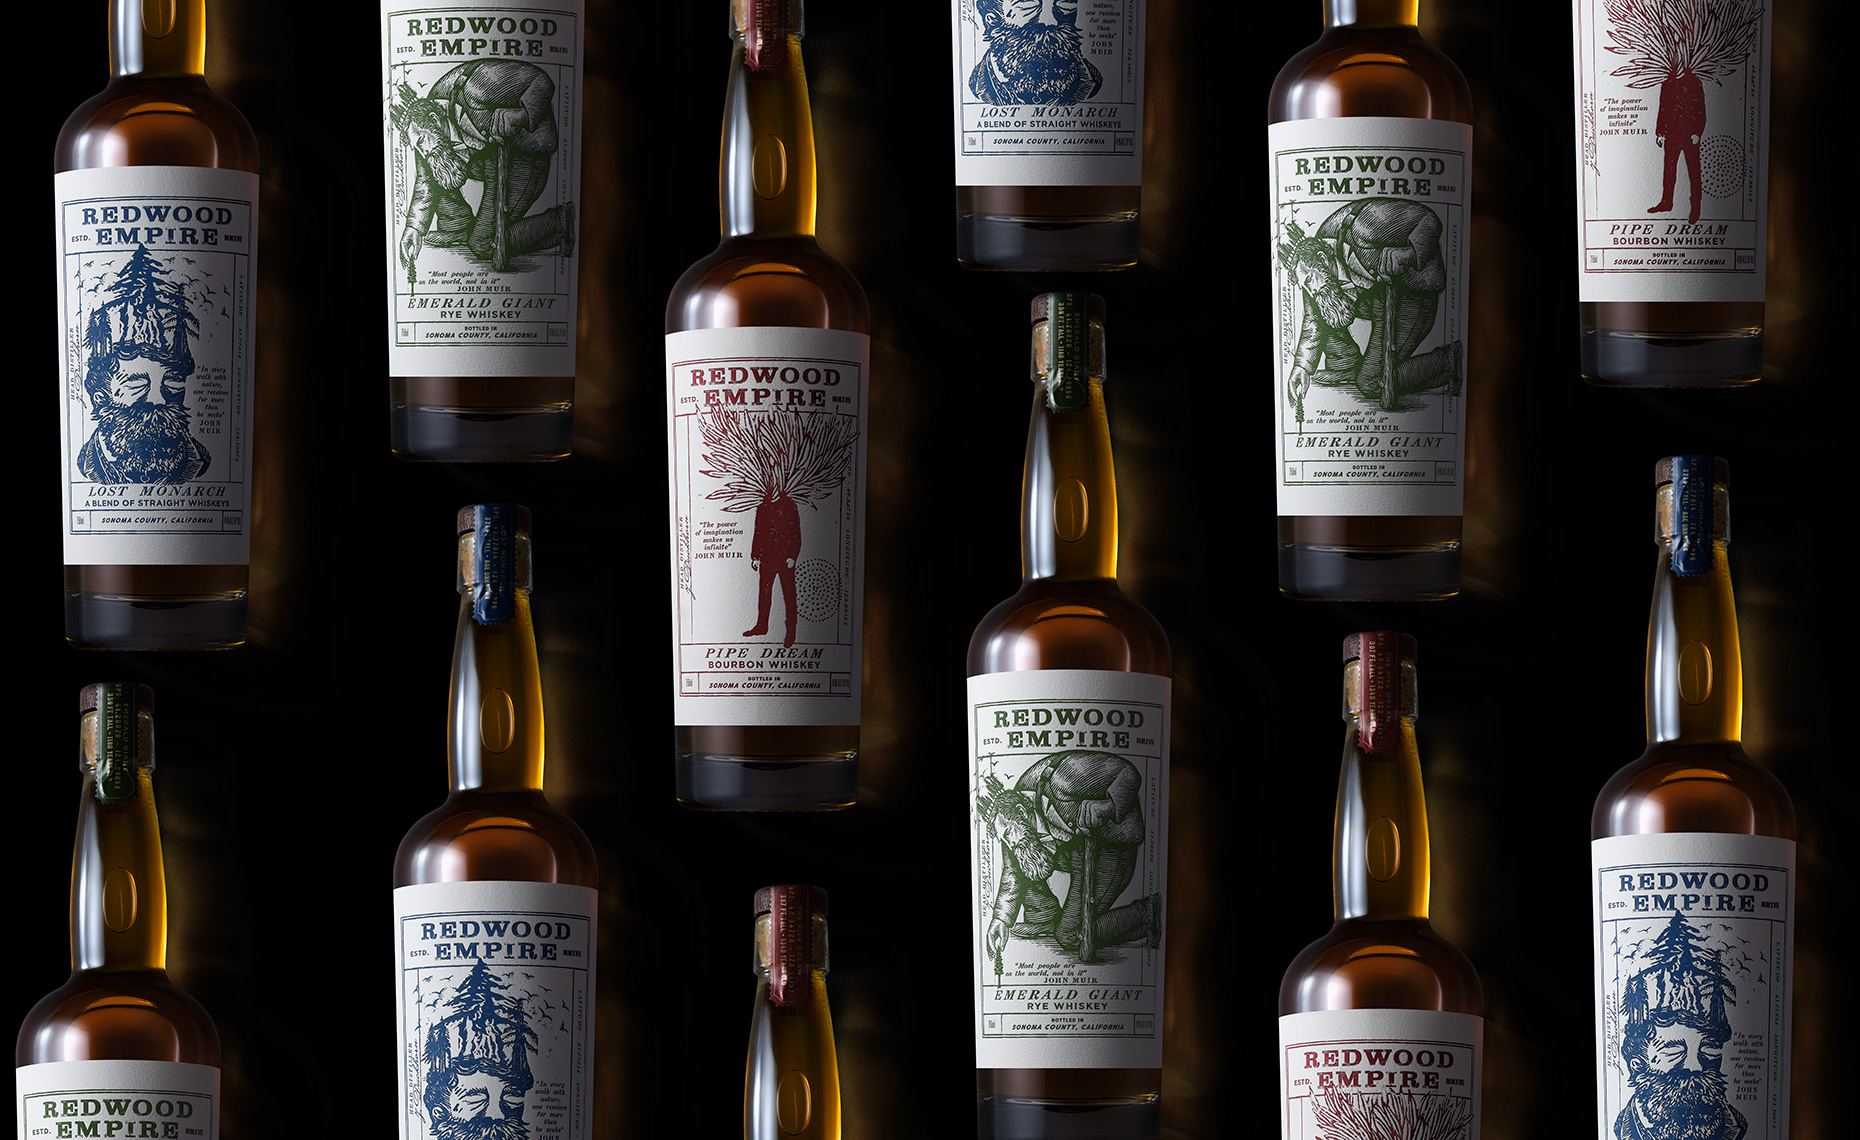 Red Productions Product & Still Life Photography Redwood Empire Pipe Dream, Emerald Giant, Lost Monarch Bourbon Rye Whiskey